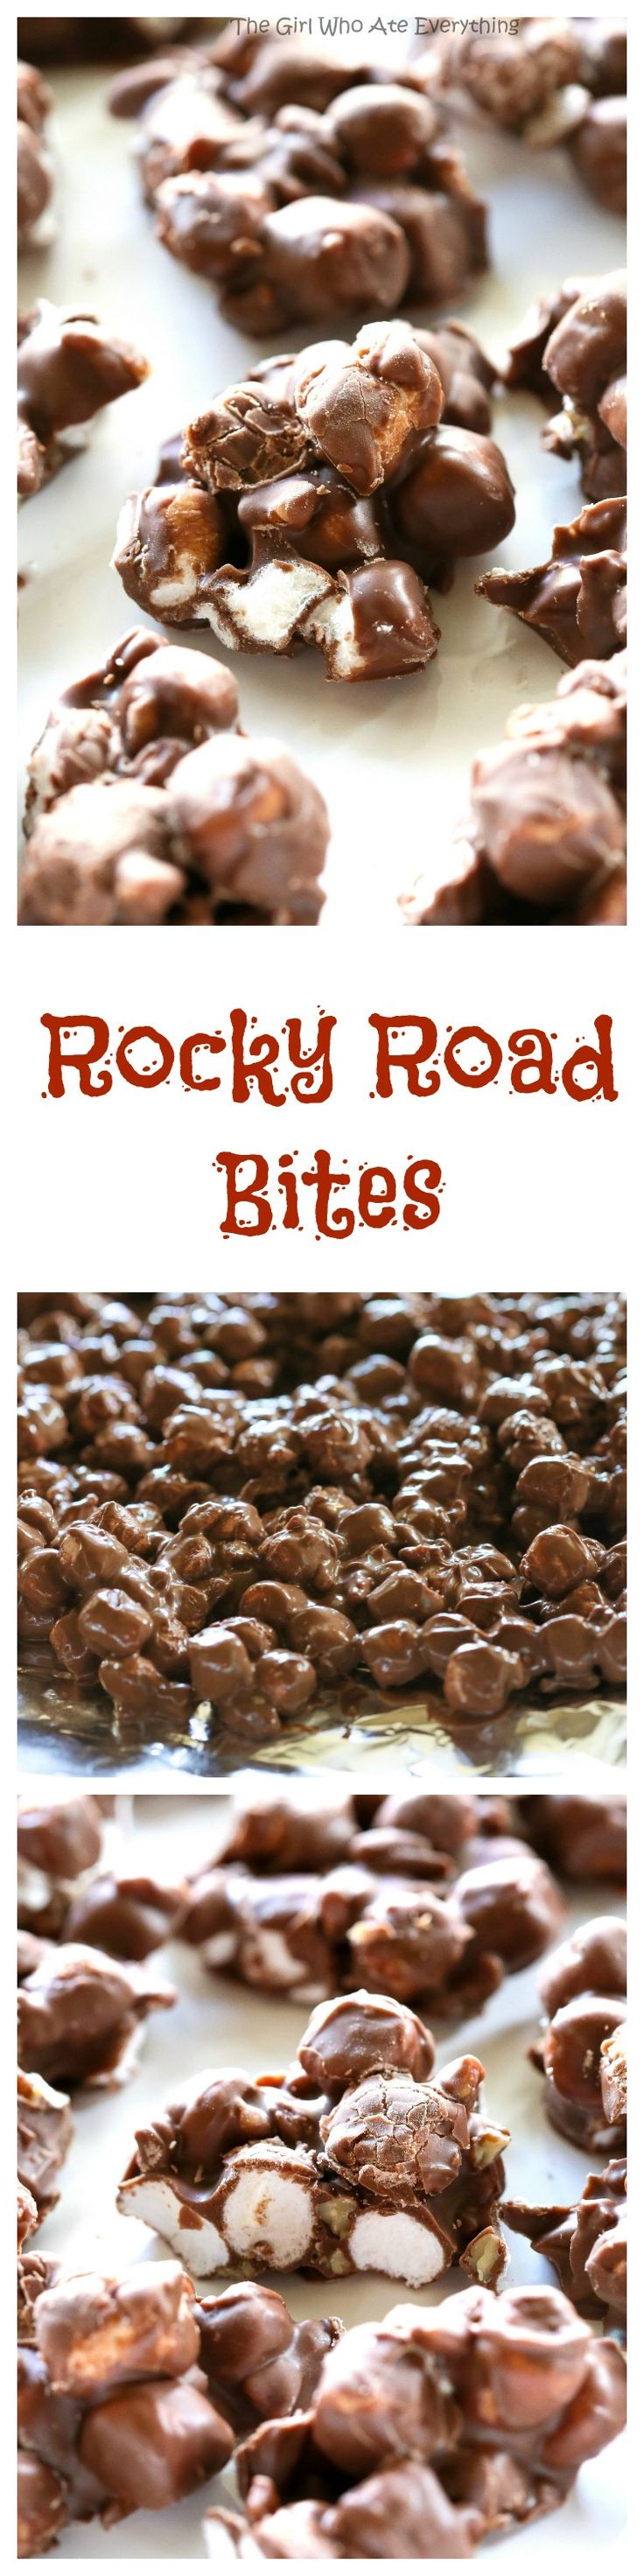 Rocky Road Bites - only 3 ingredients in this tasty treat.